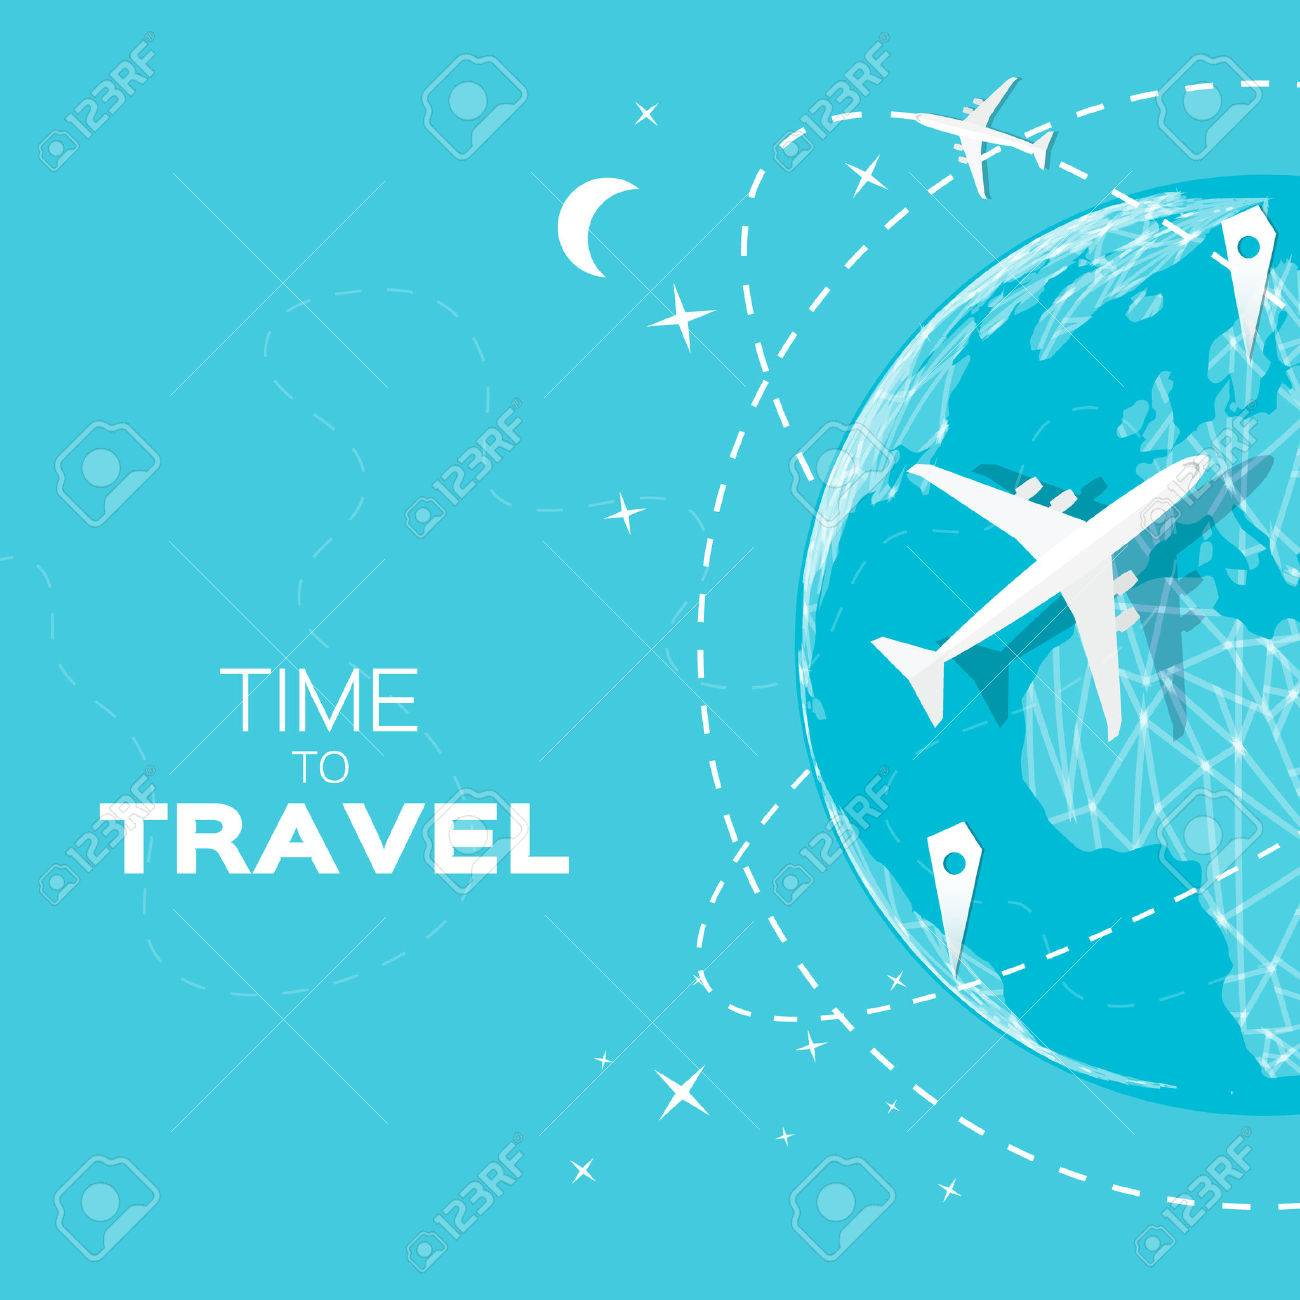 Travel world map background in polygonal style with top view travel world map background in polygonal style with top view airplane vector illustration design gumiabroncs Choice Image